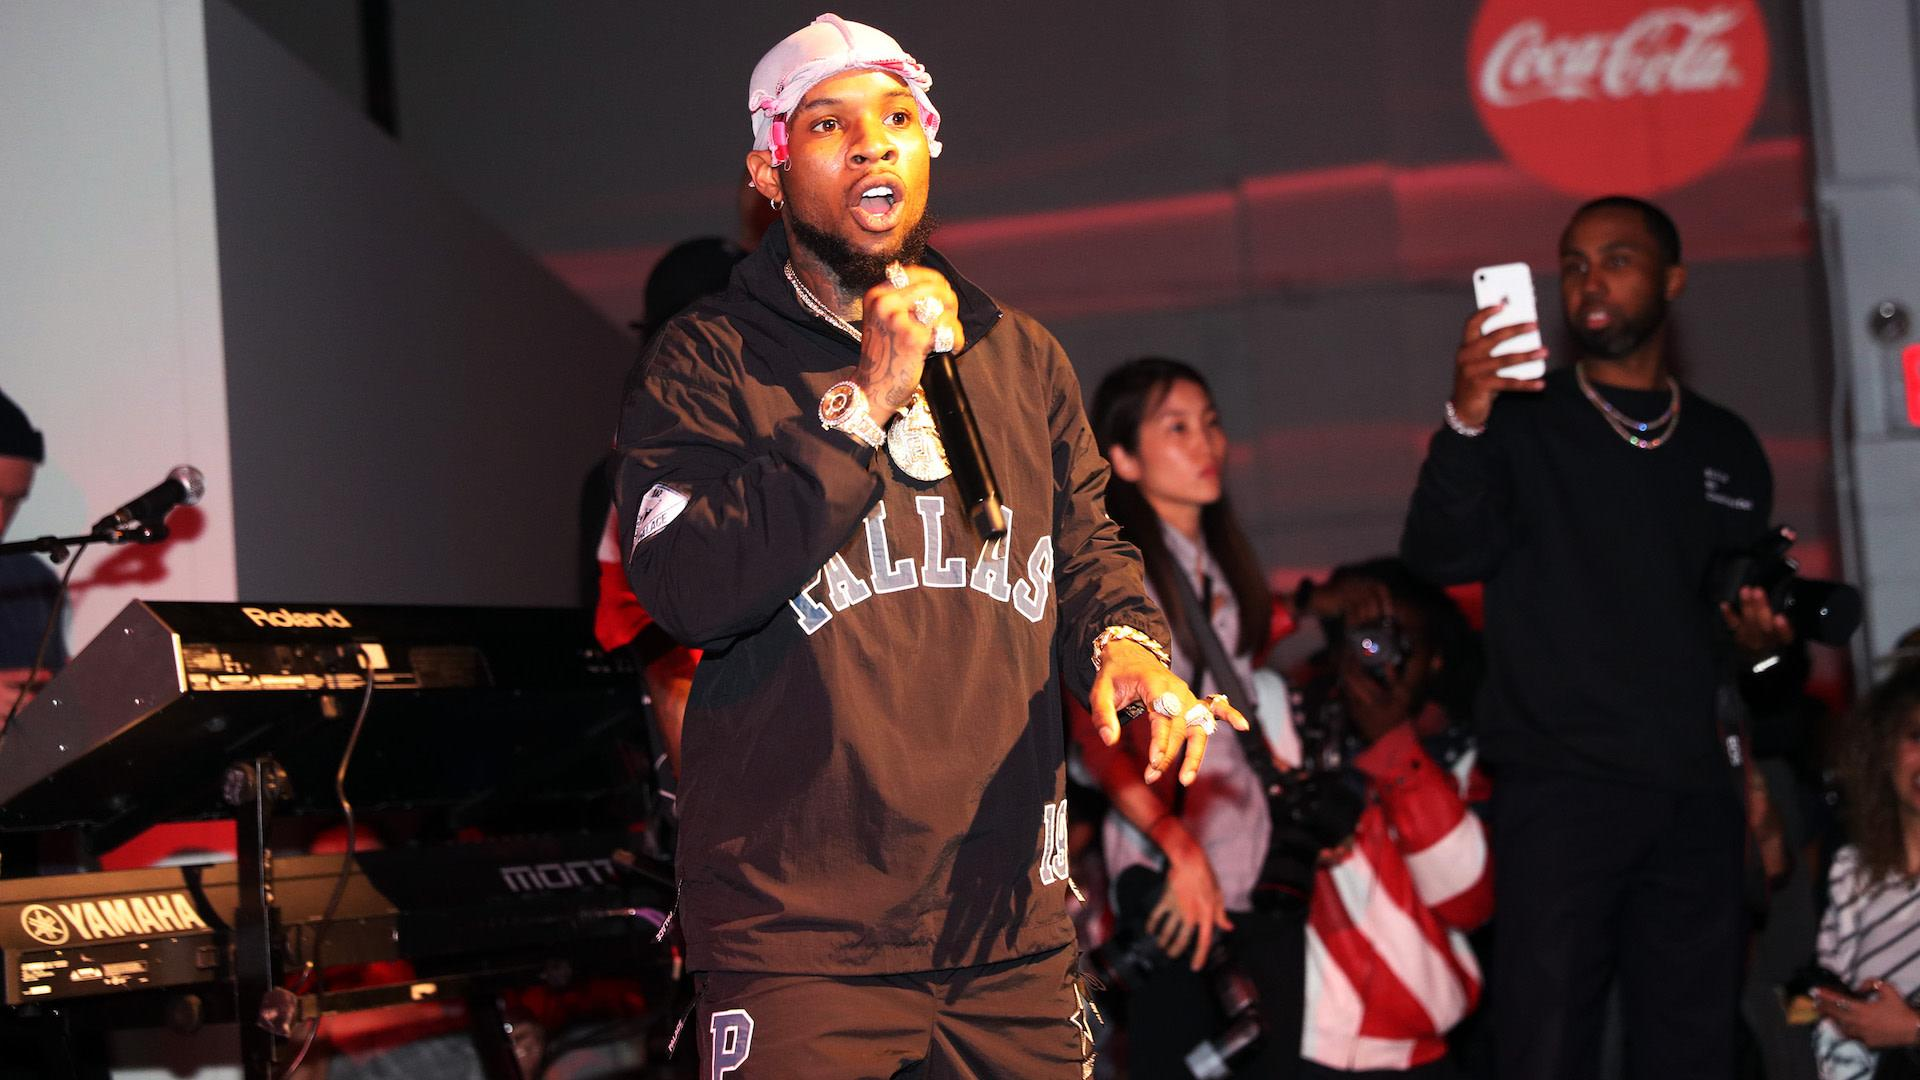 Tory Lanez Arrested On Gun Charge Following Police Search Megan Thee Stallion Was With Him